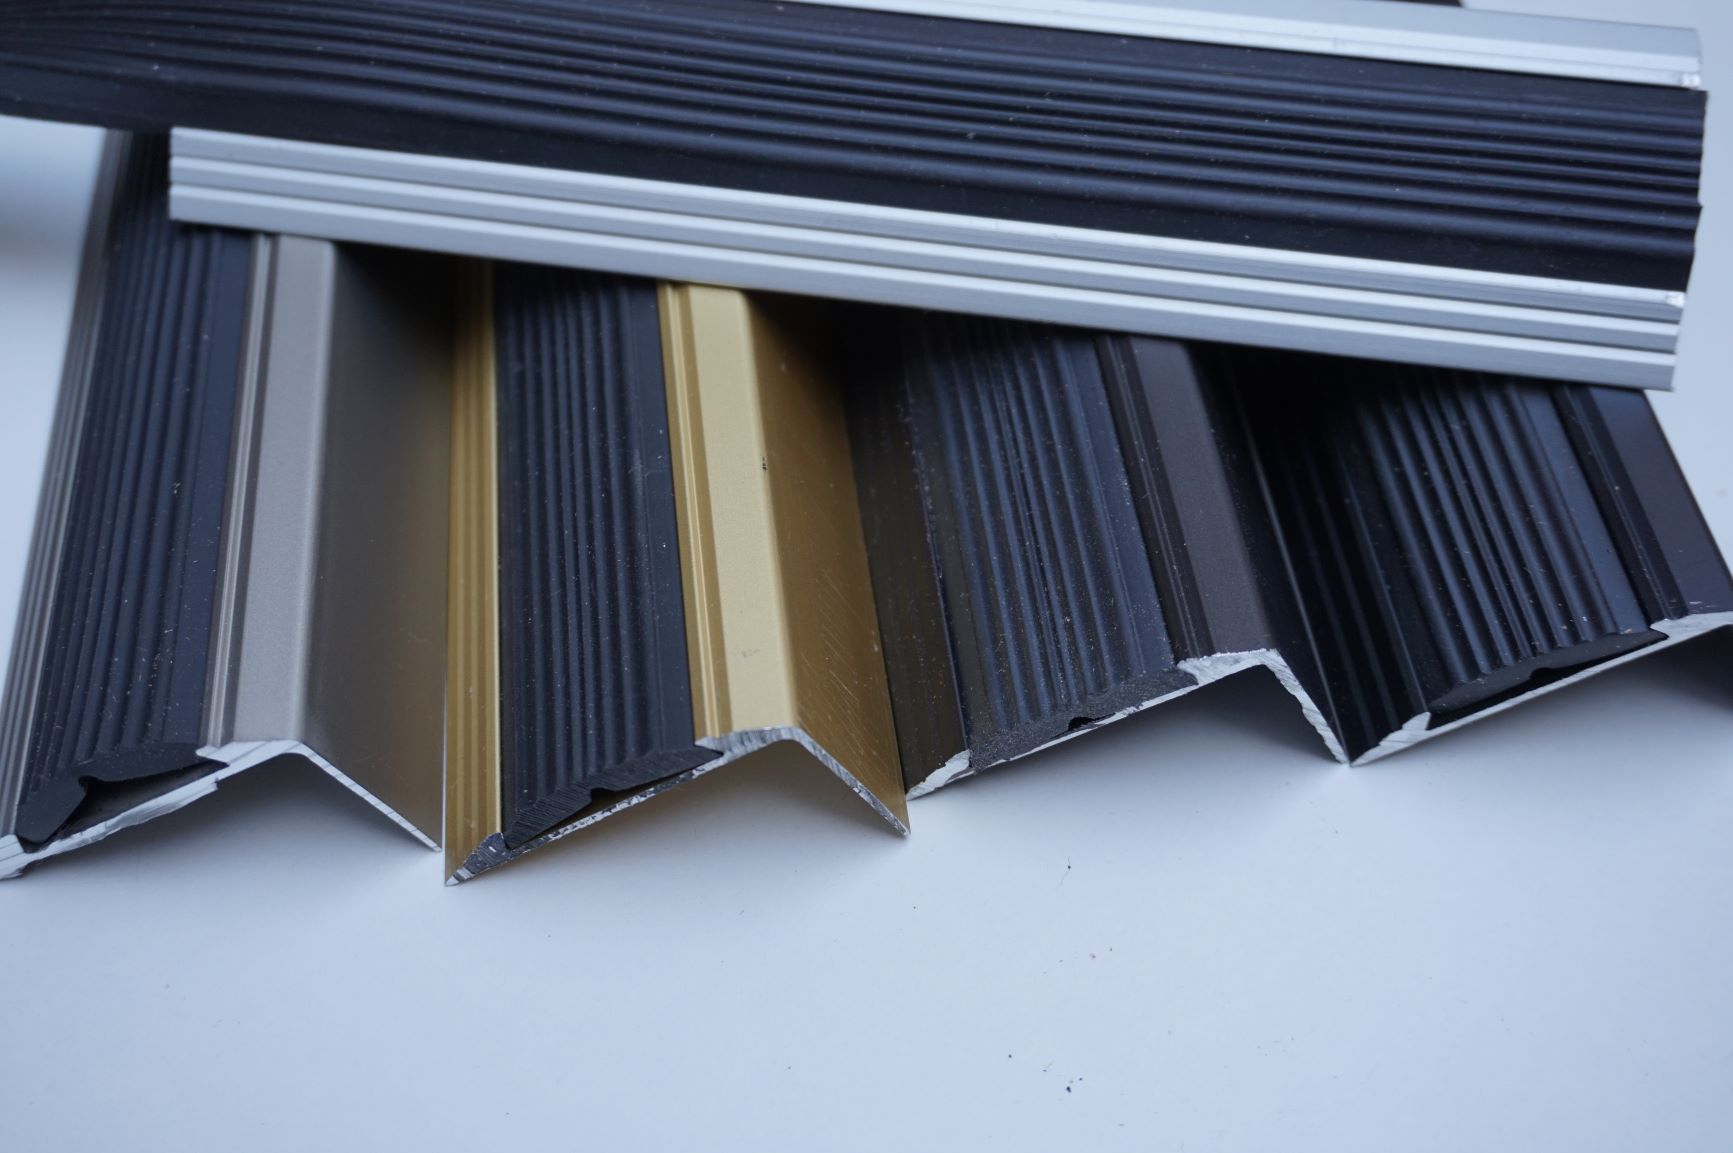 Distribution of aluminium profiles for floors and stairs - fair prices